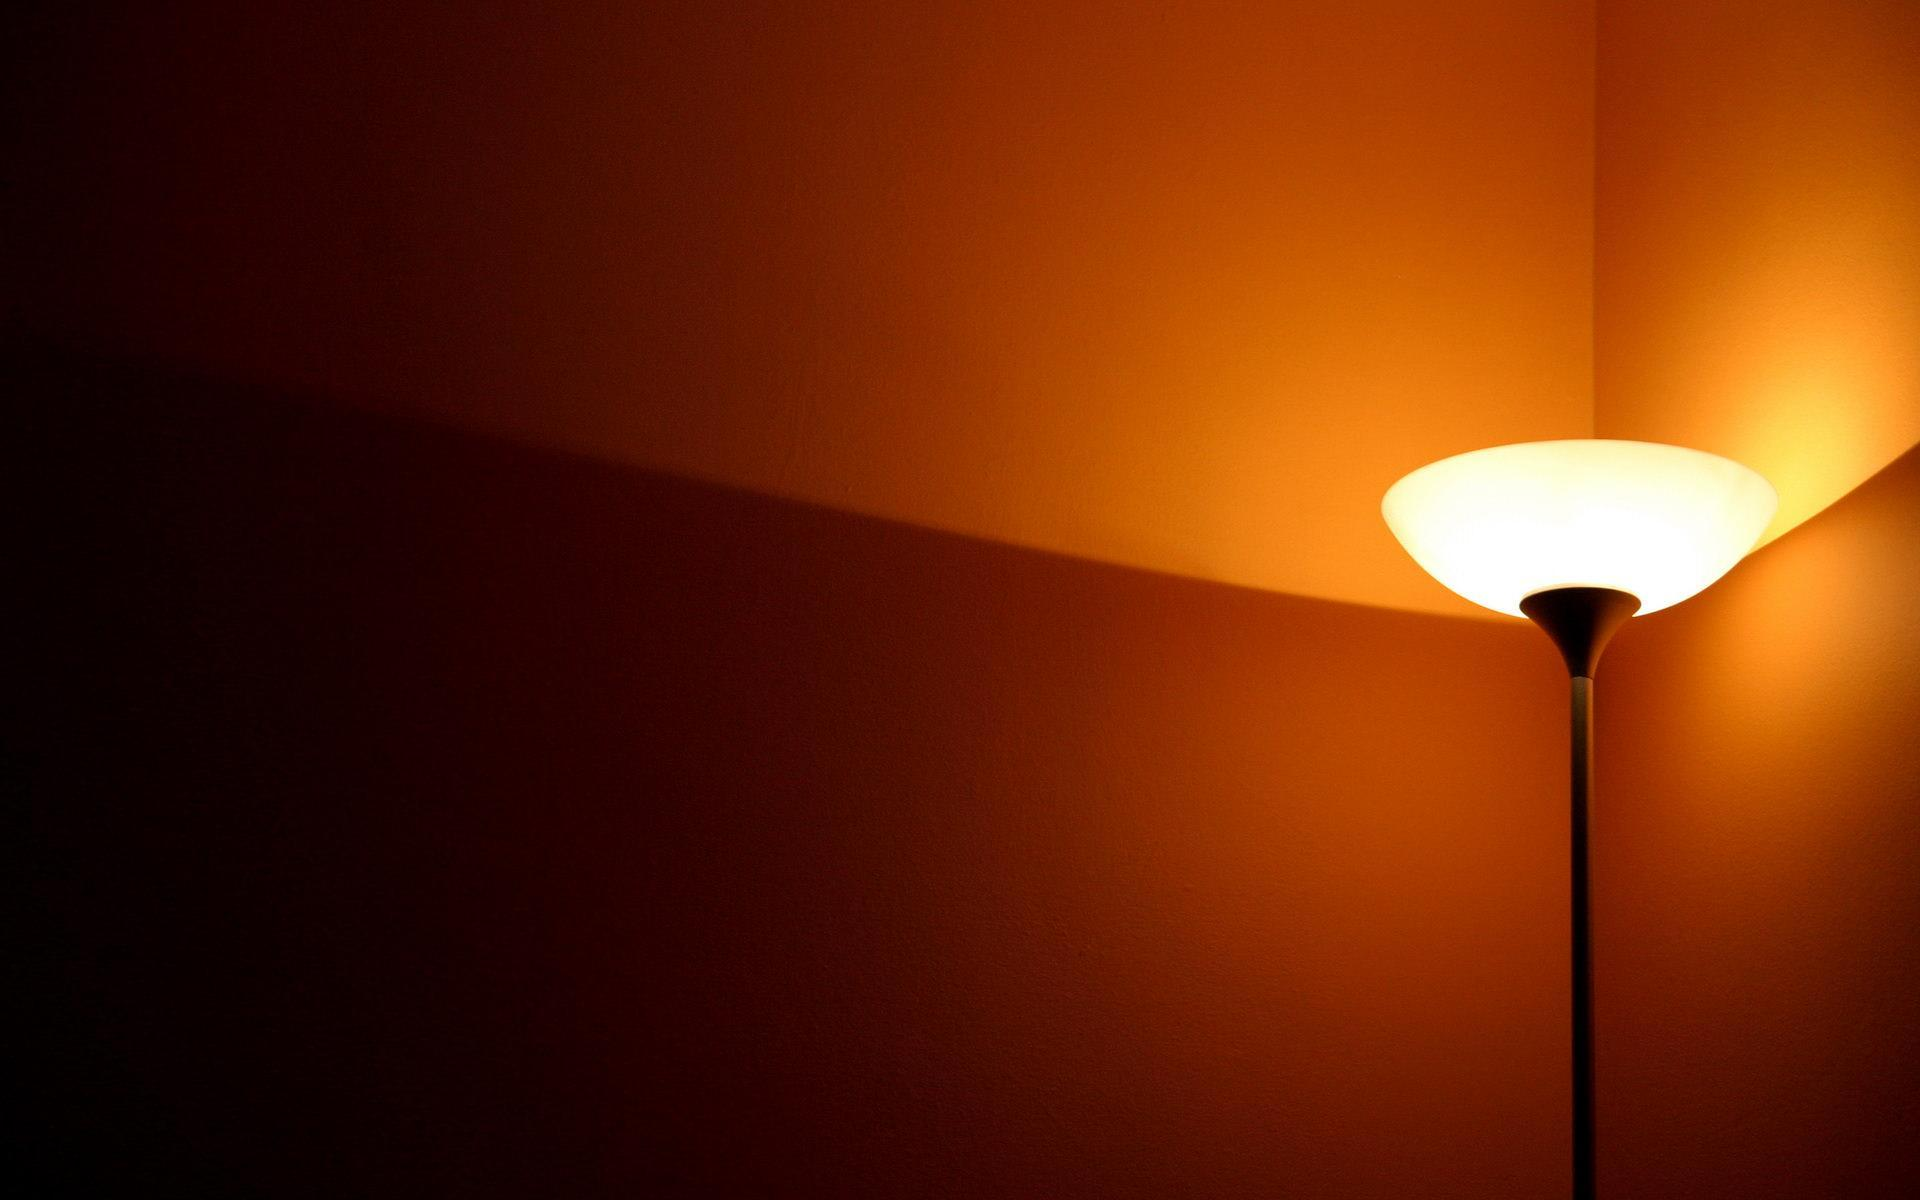 Lamp Wallpaper For Android Apk Download